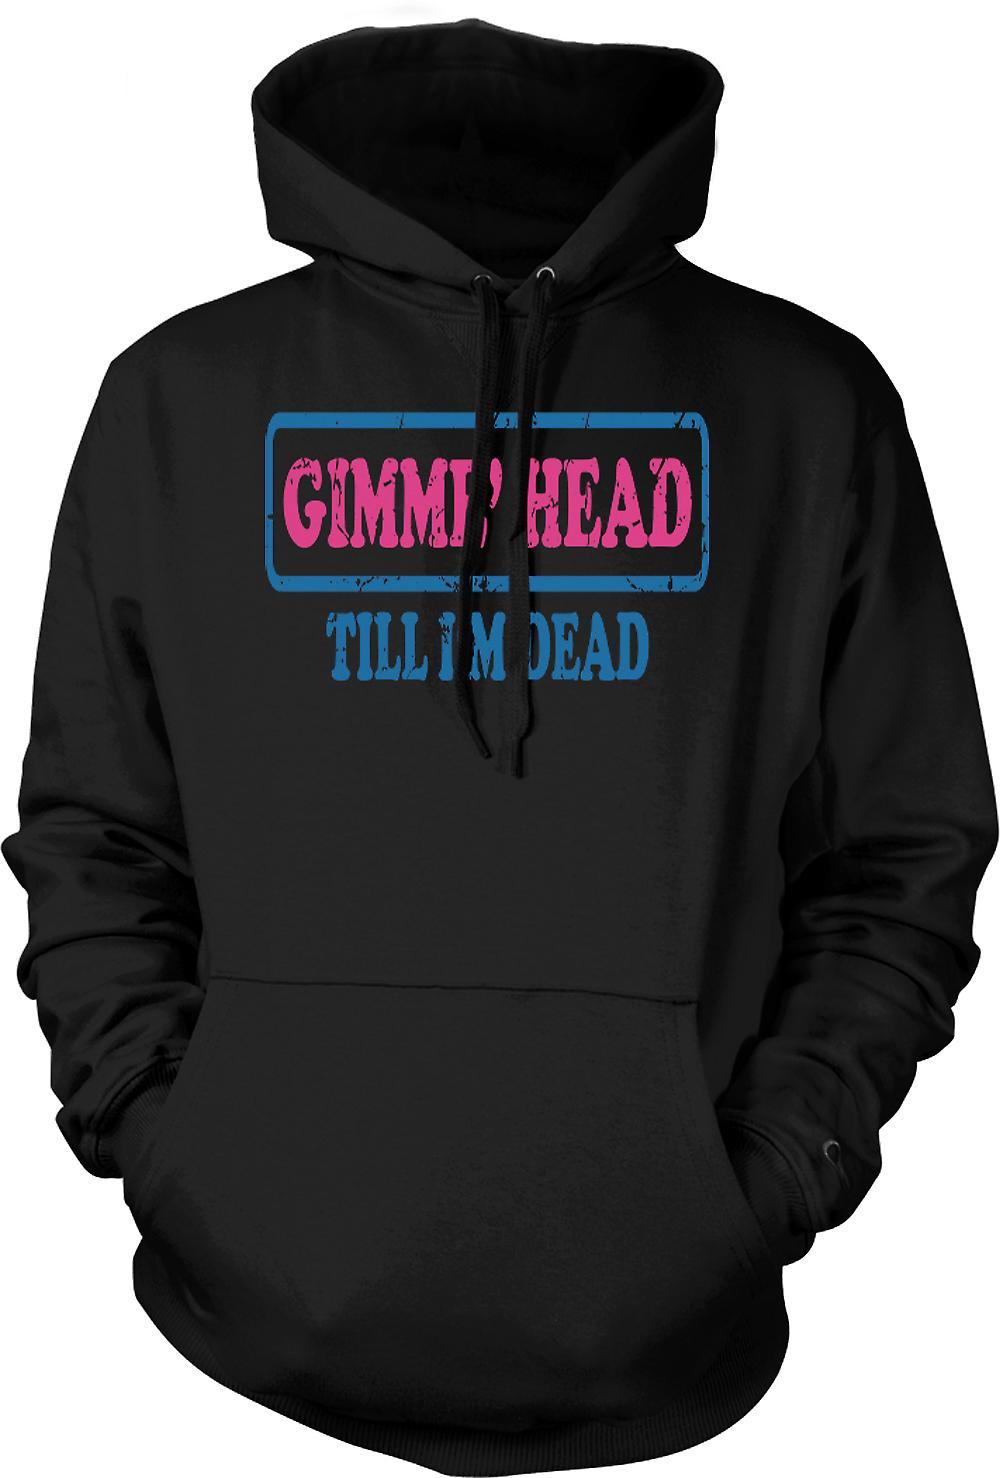 Mens Hoodie - Gimme Head Till Im Dead - Funny